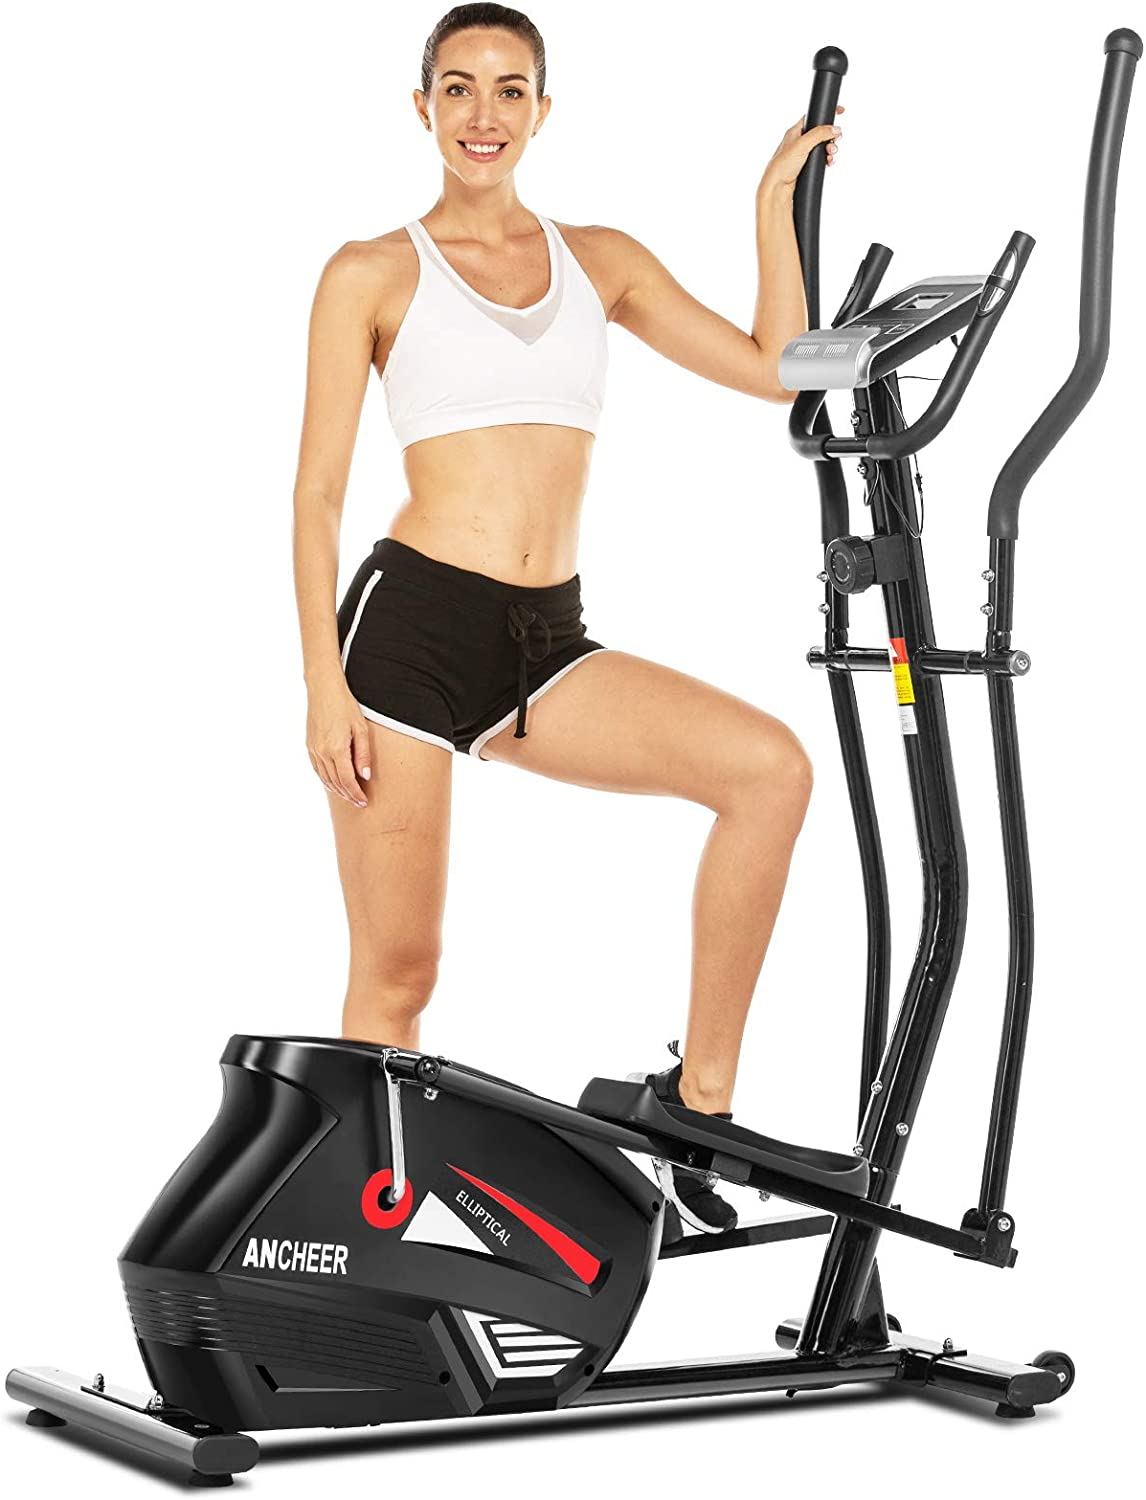 ANCHEER Eliptical Exercise Machine, Magnetic Elliptical Cross Trainer Machine with 3D Virtual APP Control, Updated Top Levels Compact Exercise Machine Smooth Quiet Driven for Home Use (Gray)